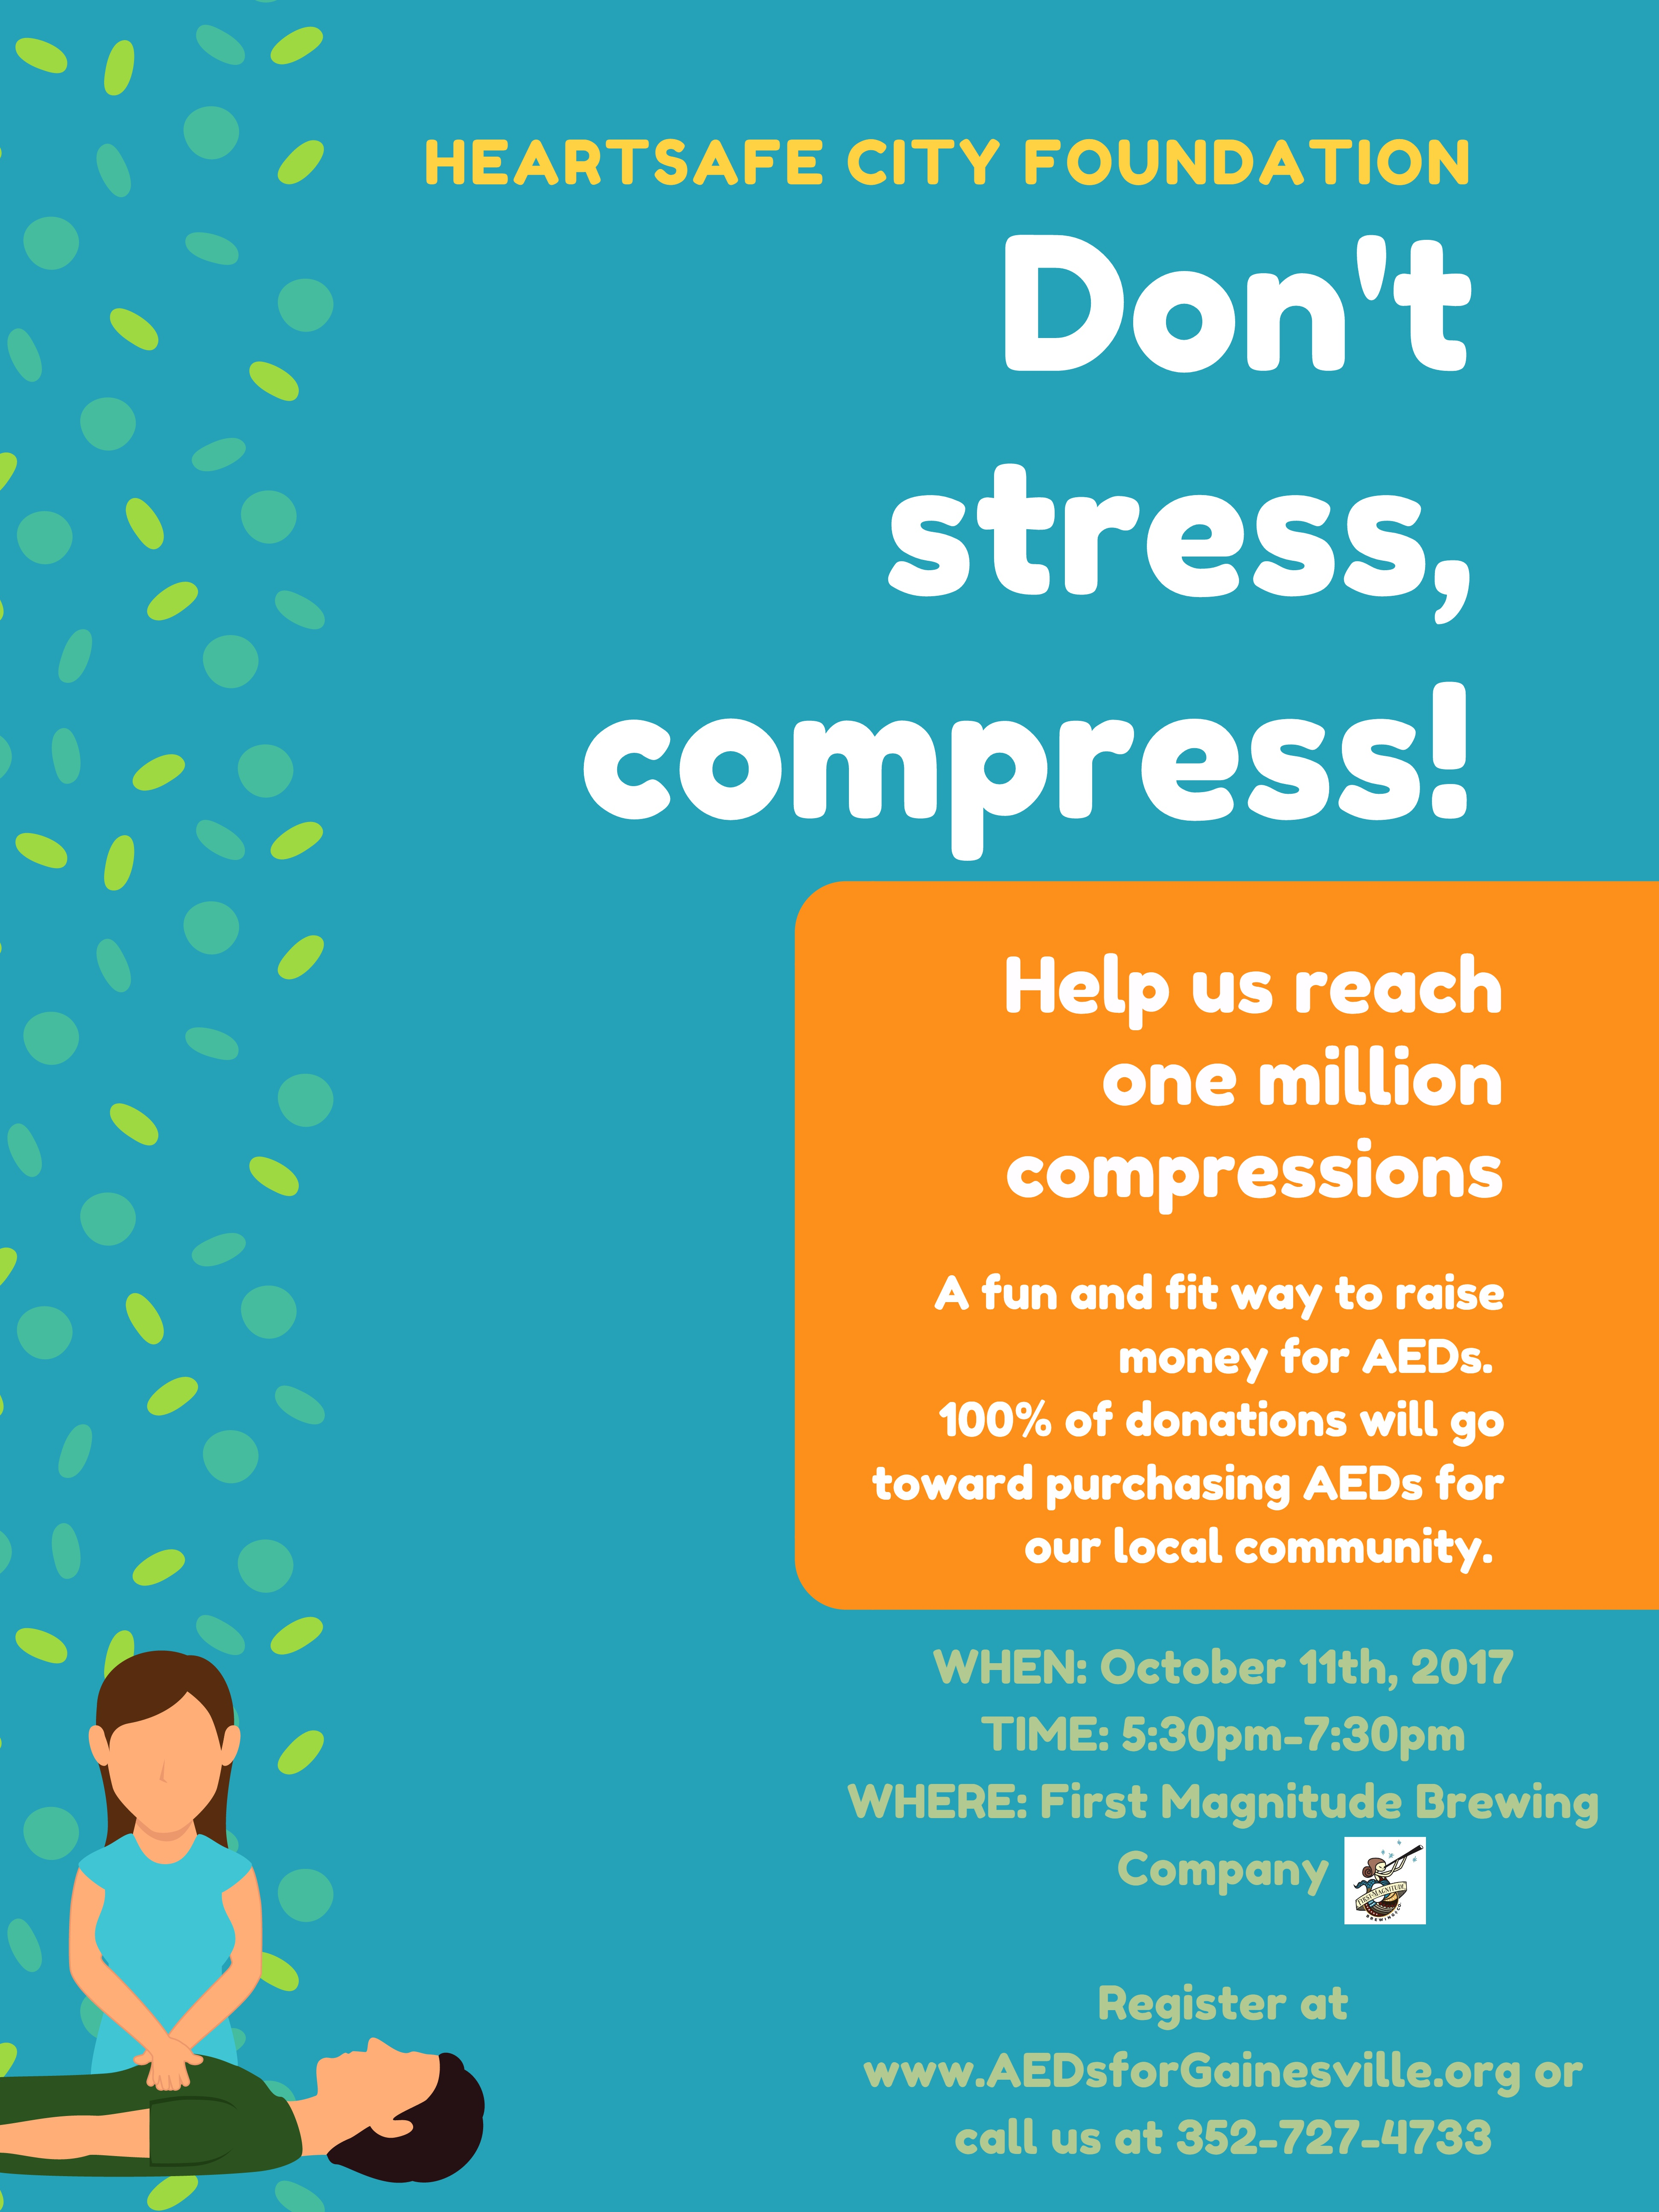 One Million Compressions Event Next Week Cpr Training